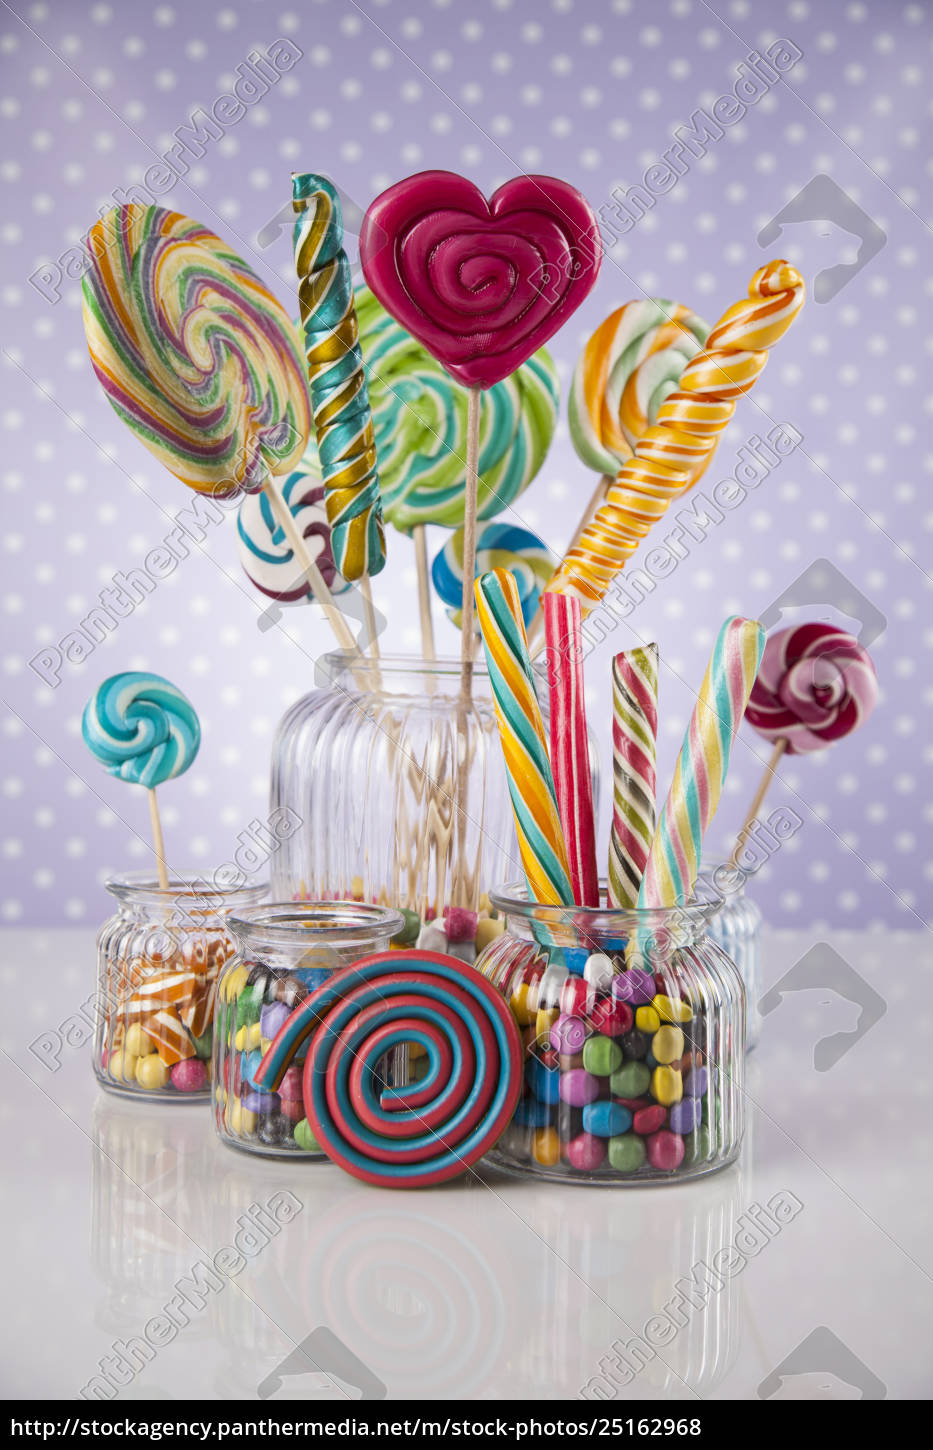 colorful, lollipops, and, different, colored, round - 25162968